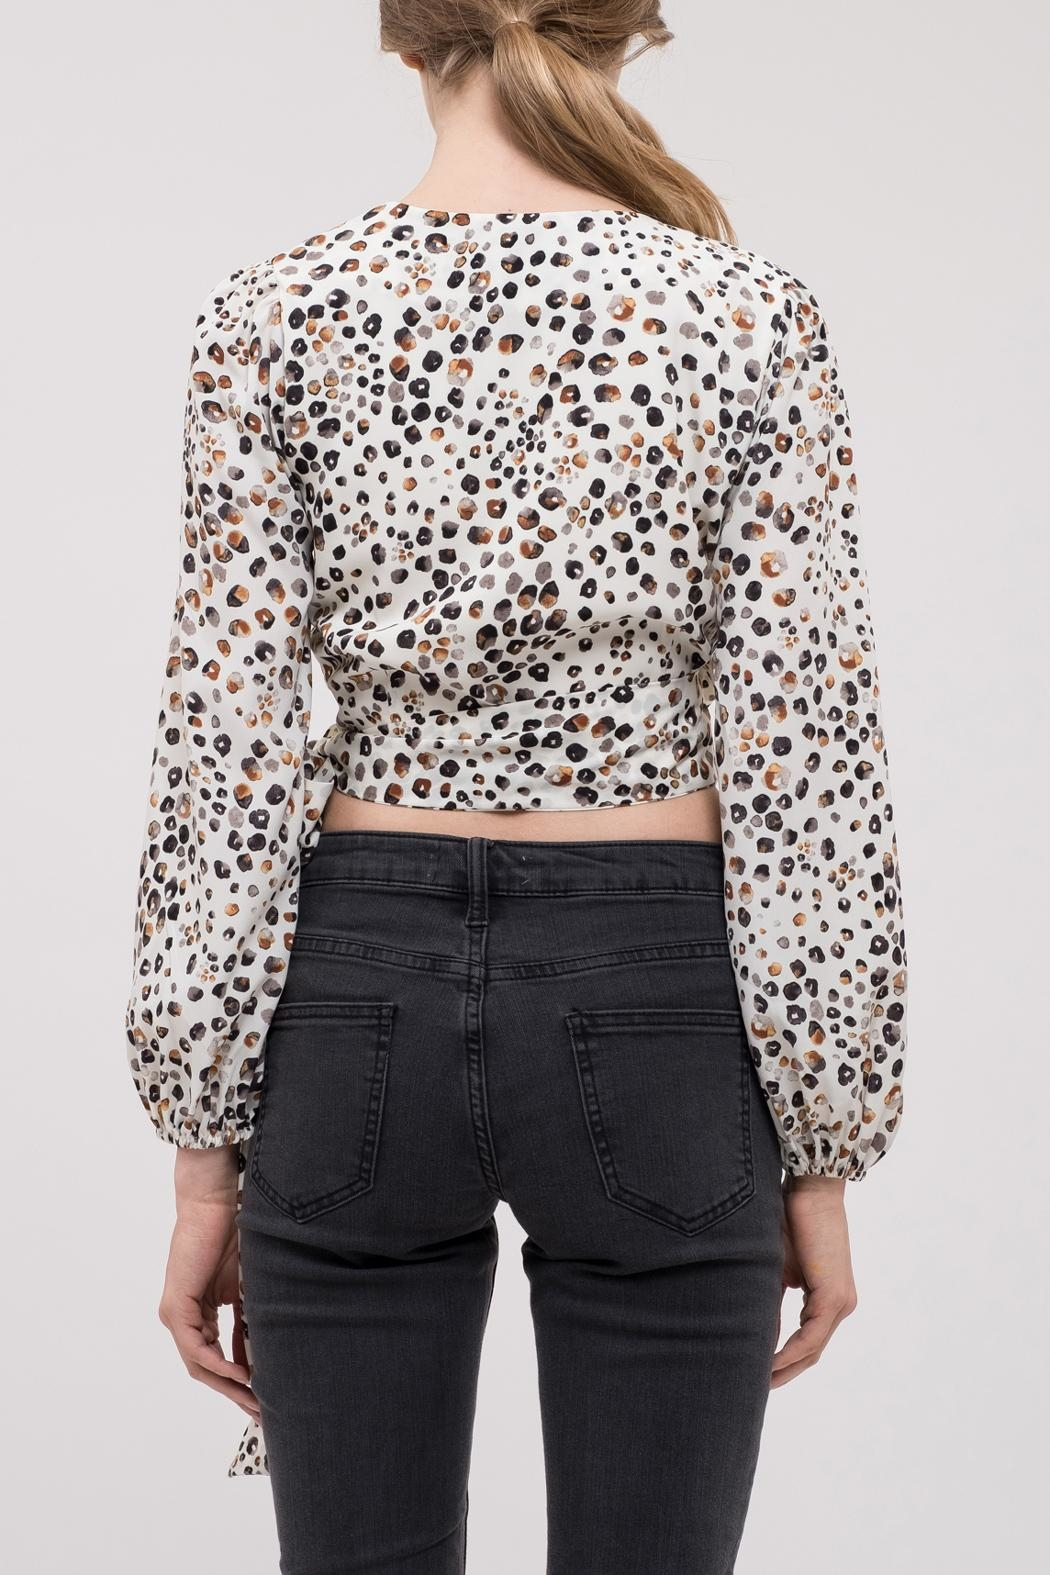 J.O.A. Leopard Wrap Top - Front Full Image